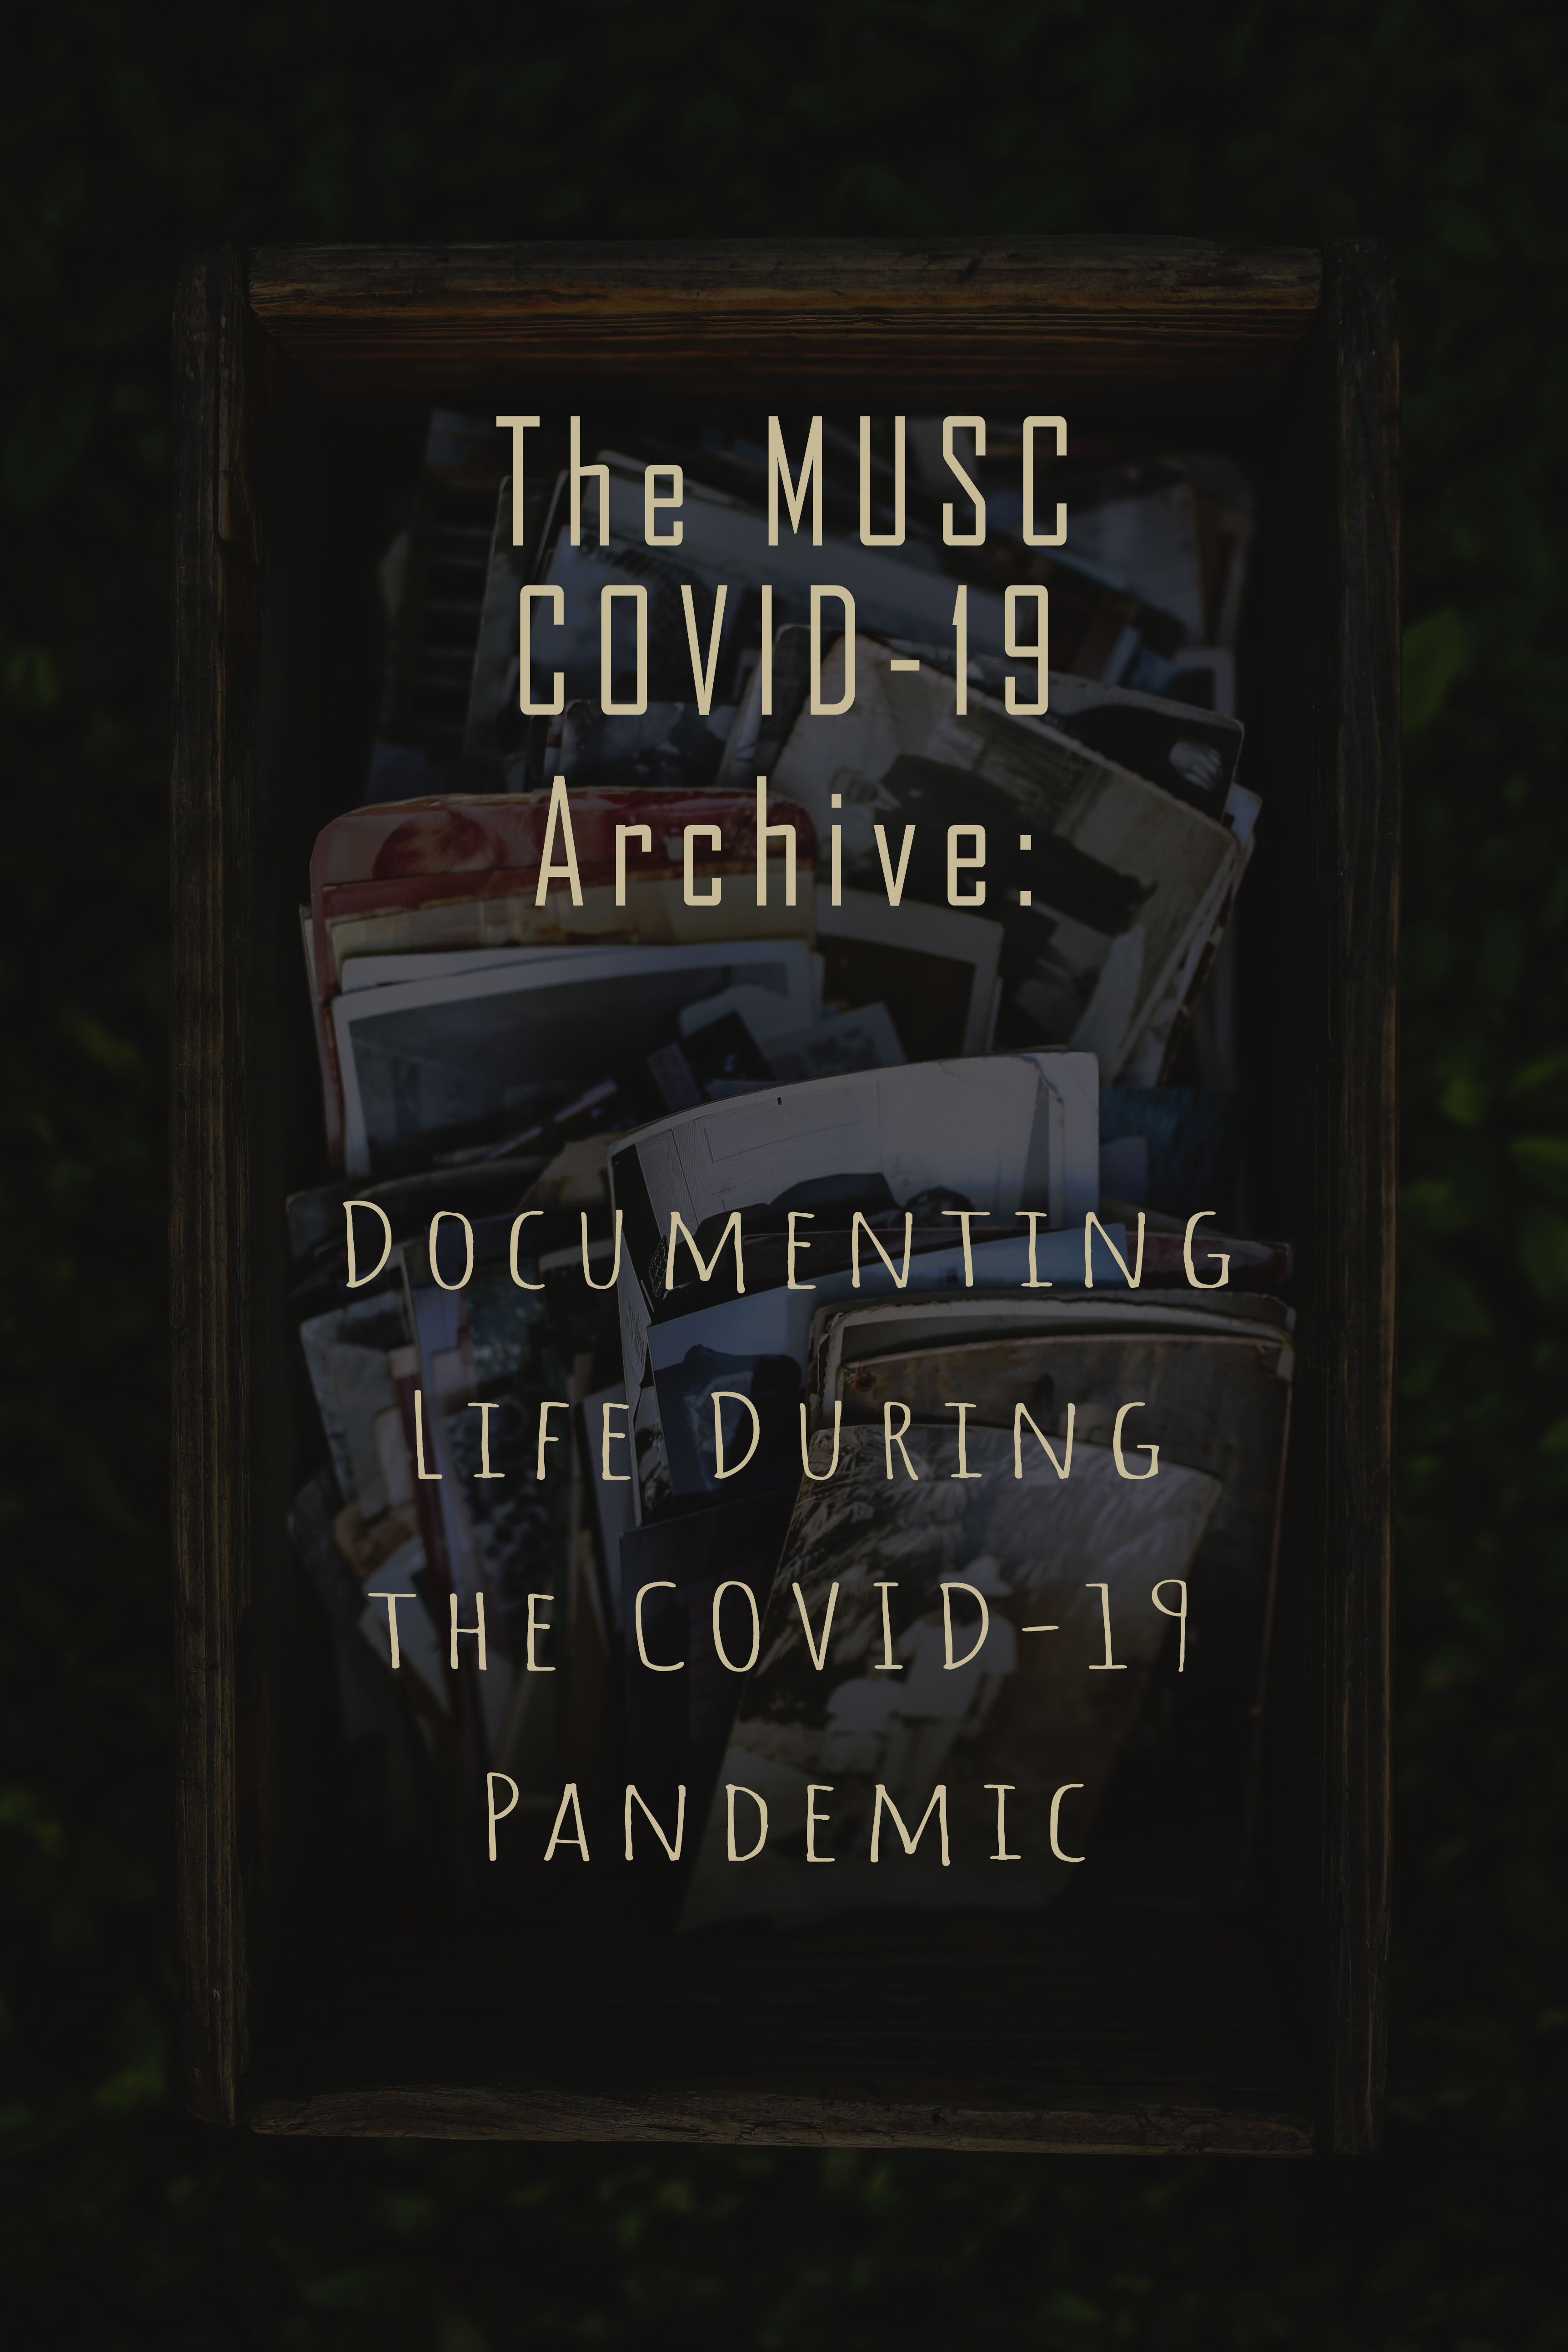 Image of wooden box filled with photographs in the background, text in the foreground reading MUSC COVID-19 Archive: Documenting Life During the COVID-19 Pandemic